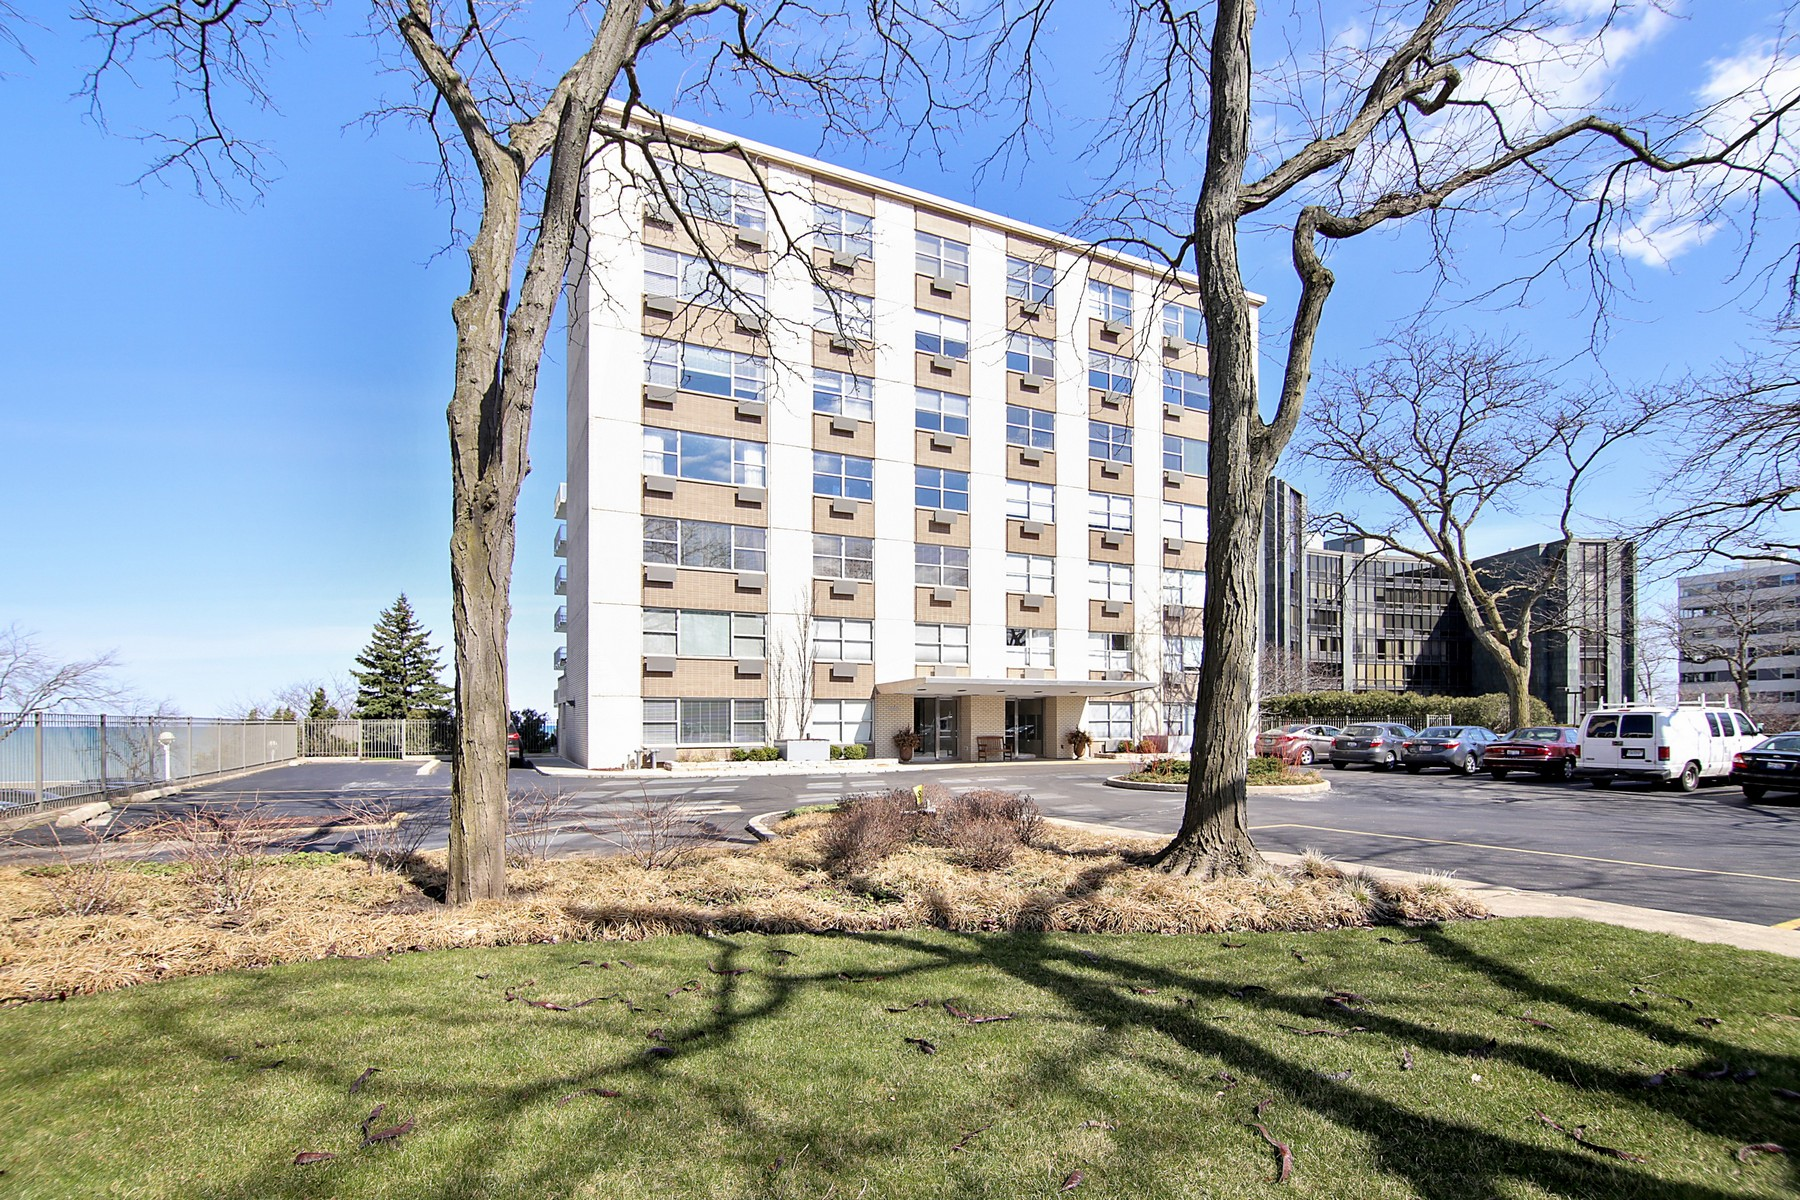 Condominium for Sale at Wonderful Fifth Floor Condo With Beautiful Lake Michigan Views 1440 Sheridan Road Unit 503 Wilmette, Illinois, 60091 United States